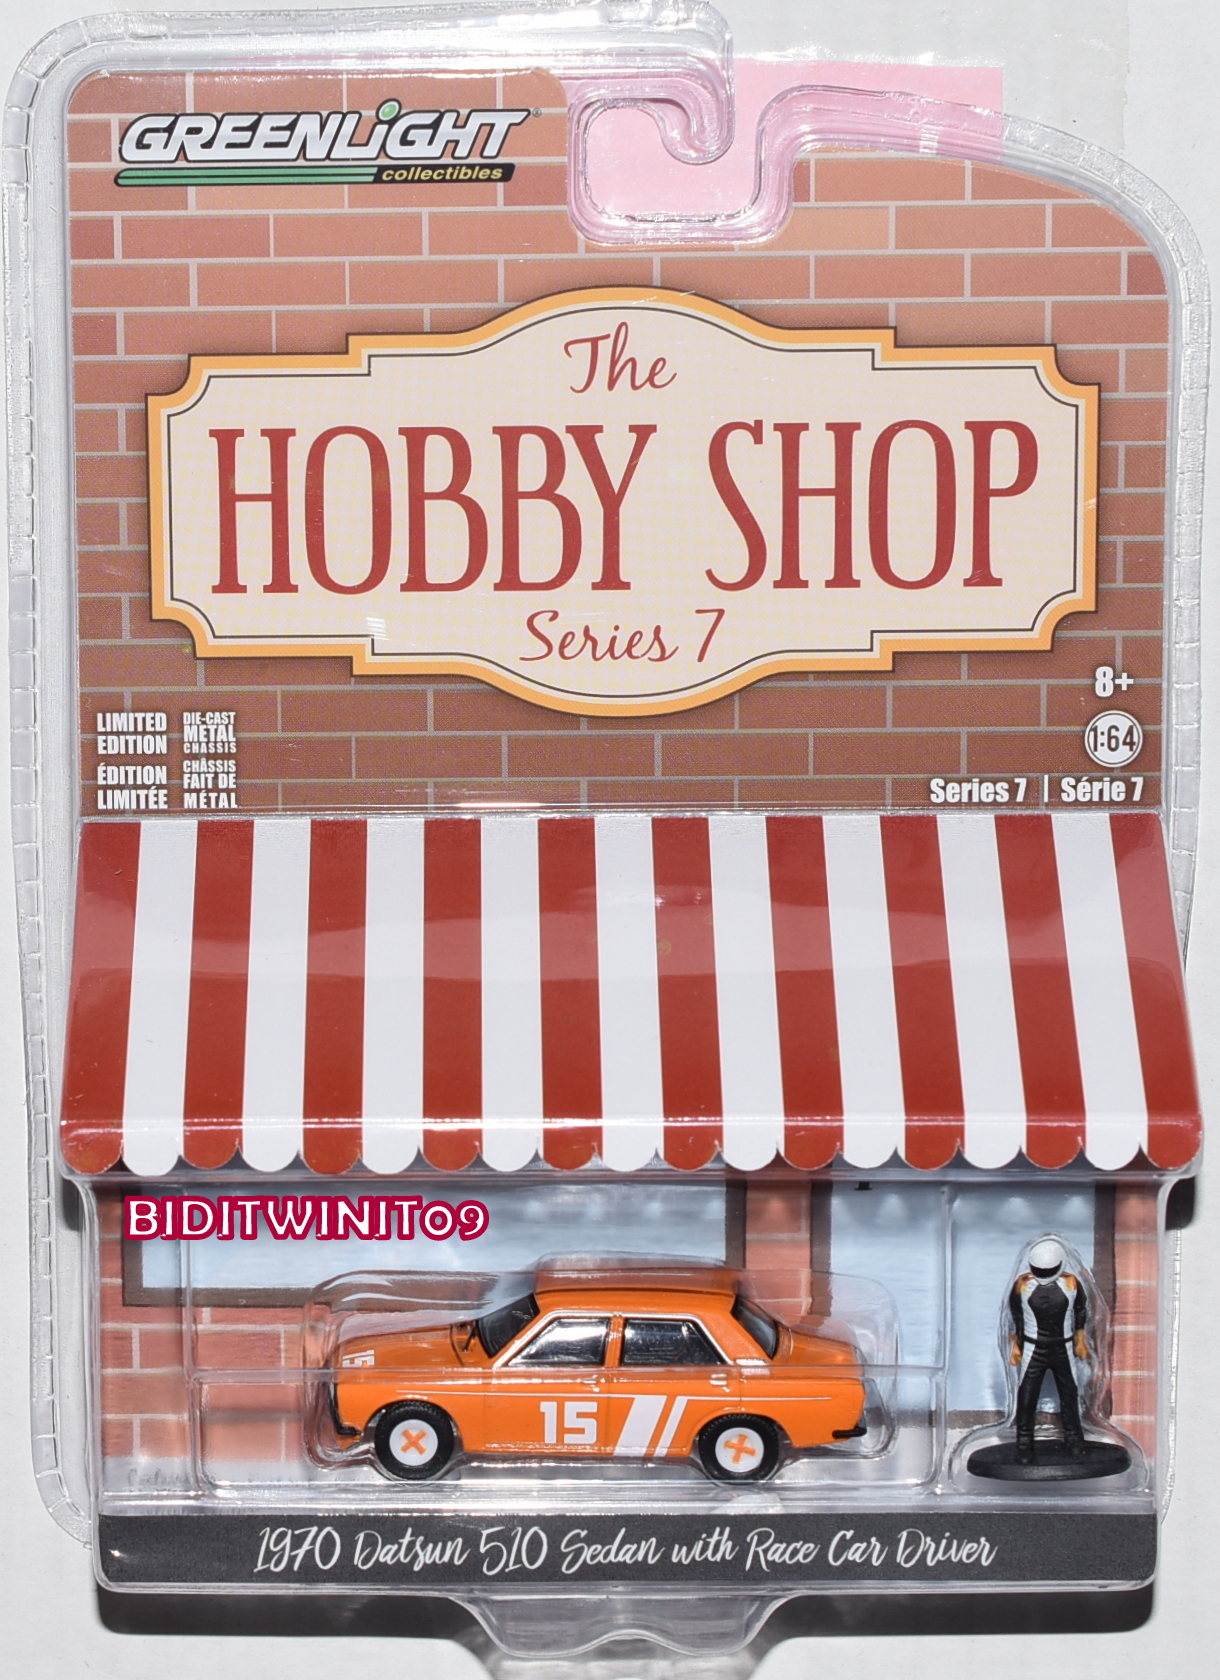 GREENLIGHT HOBBY SHOP SERIES 7 1970 DATSUN 510 SEDAN WITH RACE CAR DRIVER